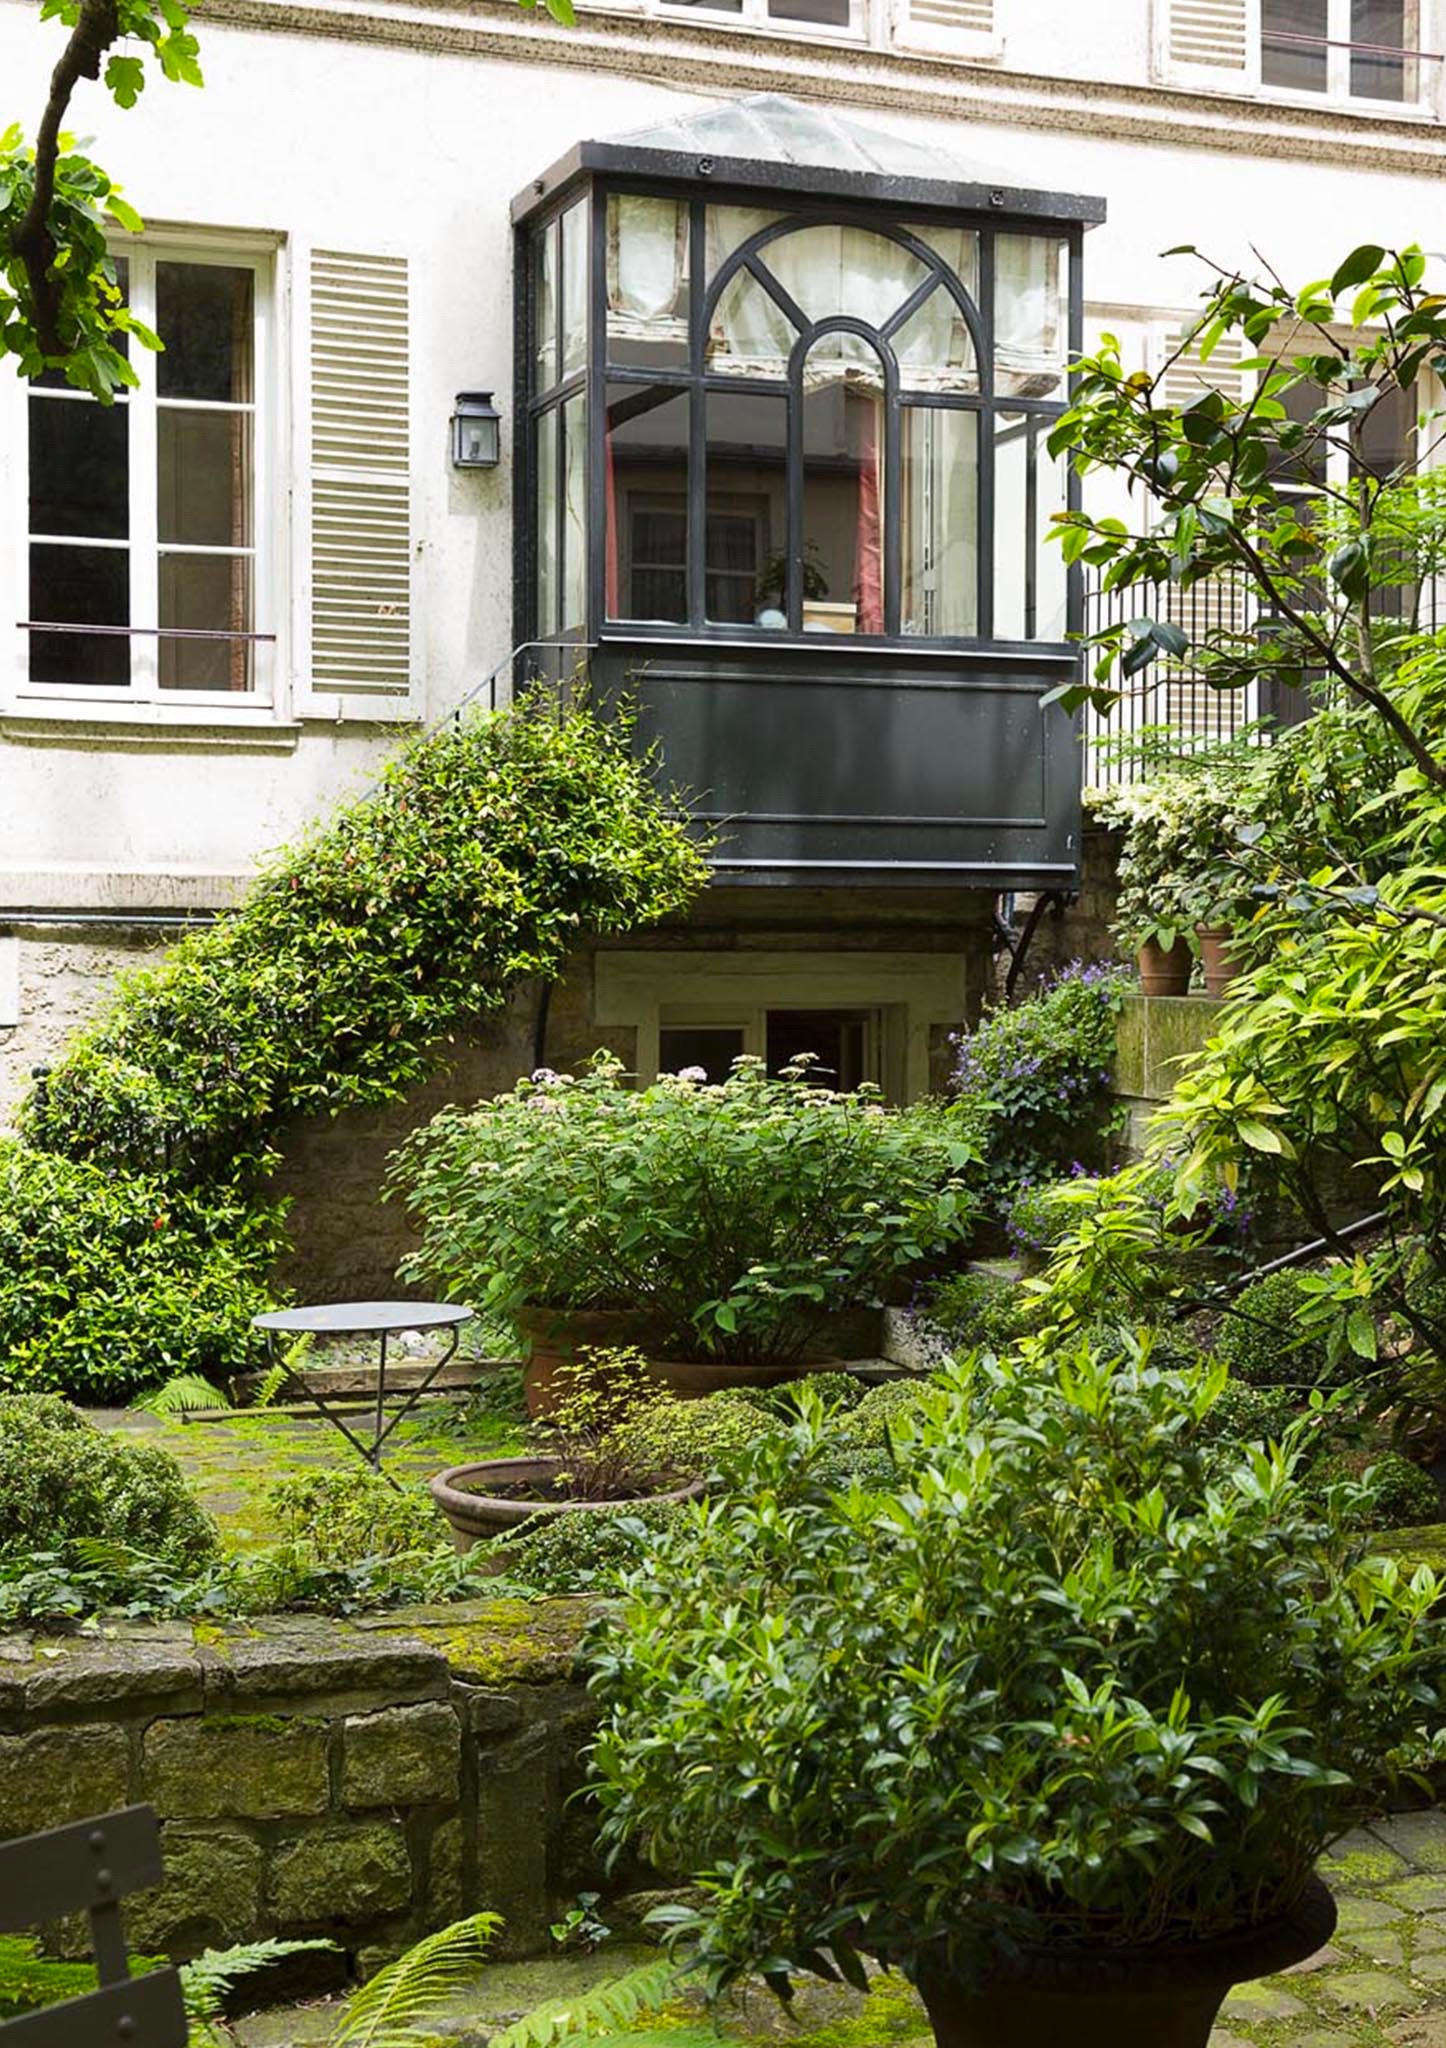 A sitting room overlooks the garden and is connected by an iron staircase to the courtyard. The apartment has exclusive use of the garden (but does not own it).